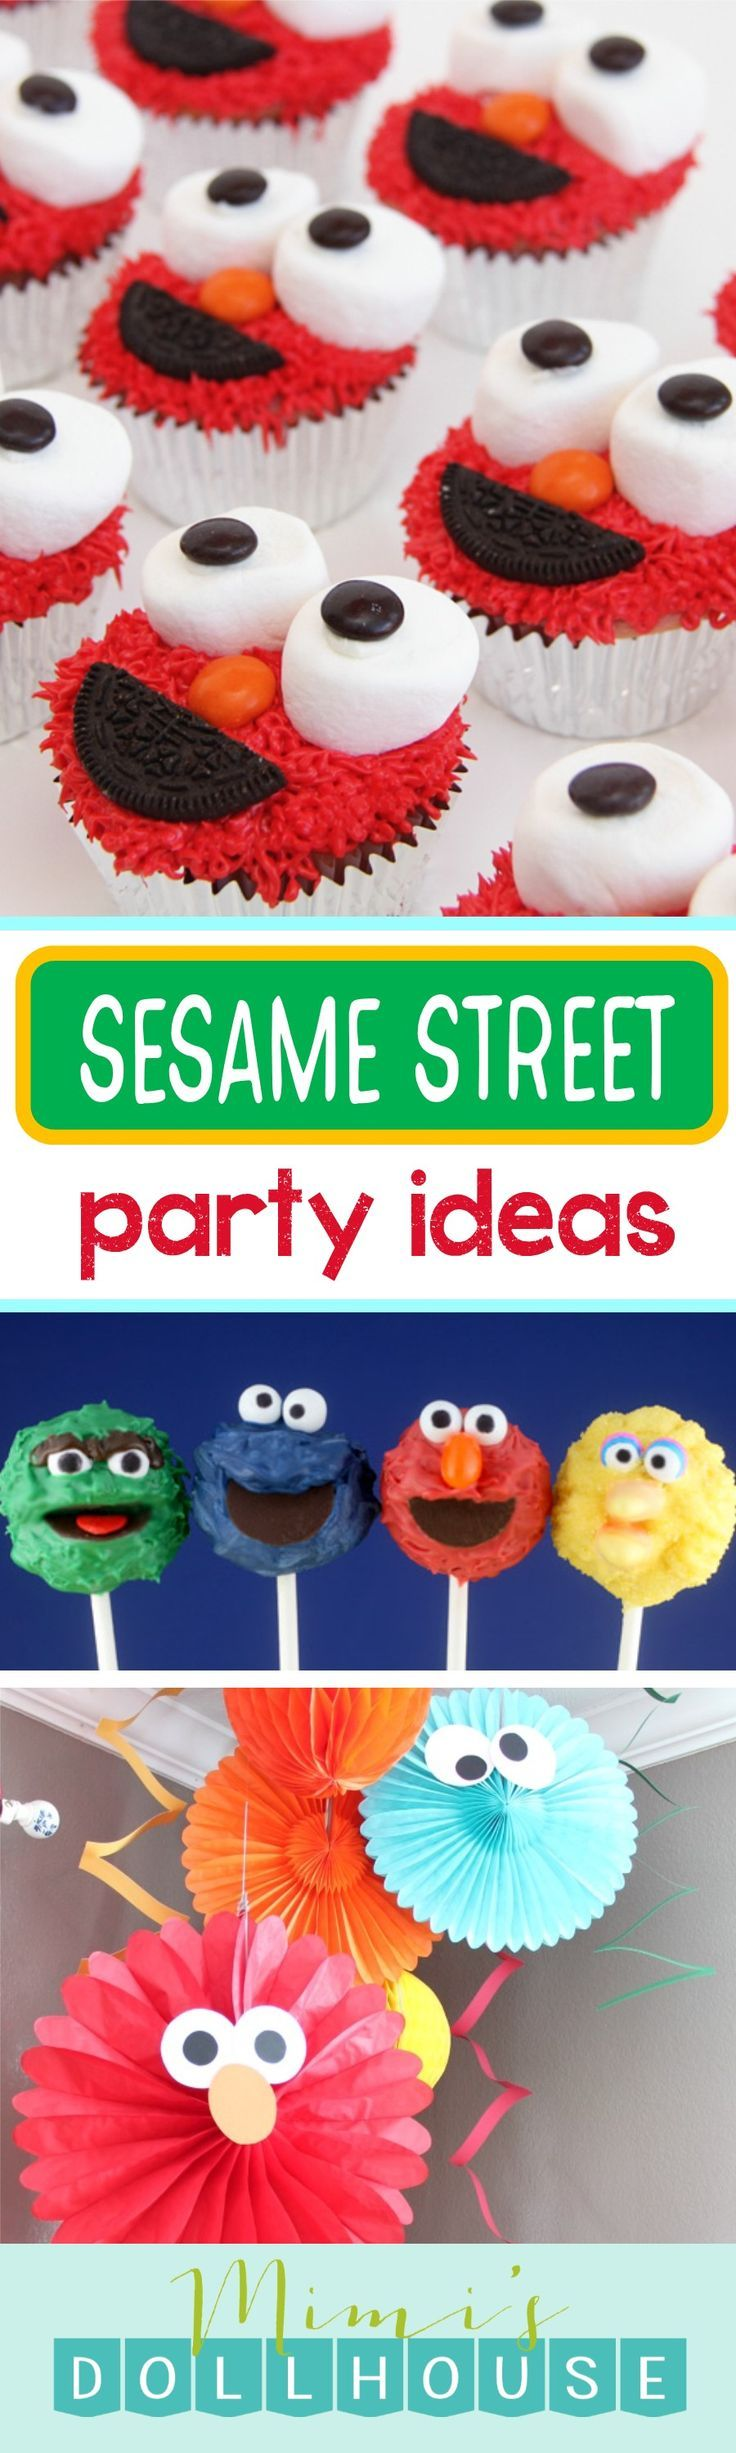 Sesame Street Party: Sesame Street Birthday Ideas. Looking for some Sesame Street birthday party inspiration?   For more Elmo Party inspiration and party ideas, be sure to check out our Sesame Street Party posts. via @mimisdollhouse